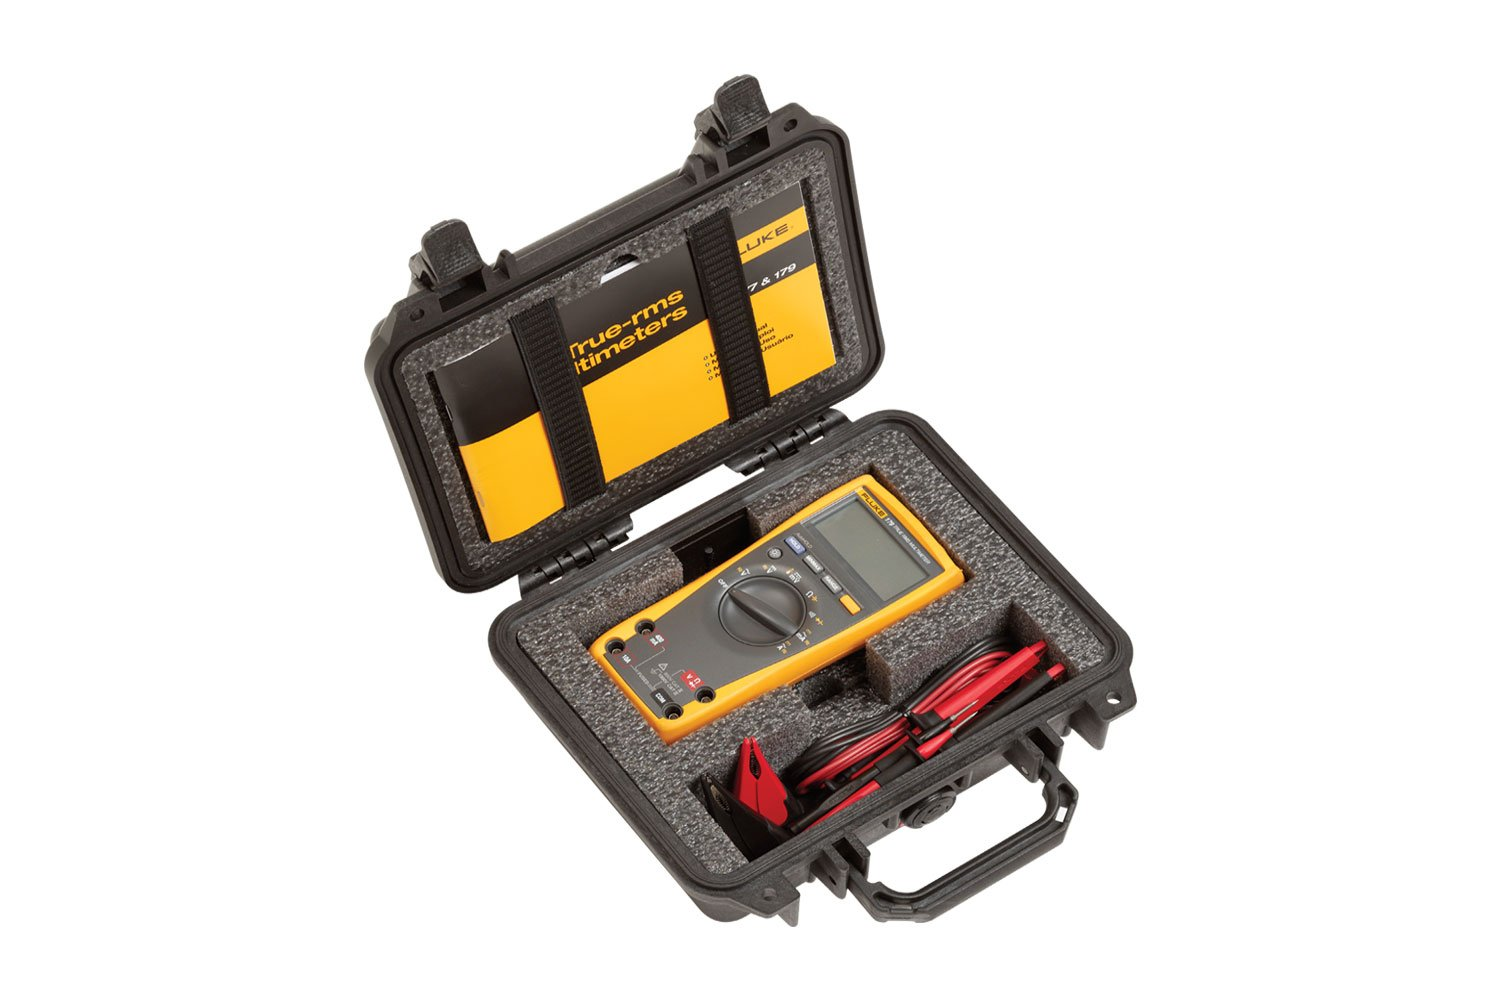 Fluke CXT170 Rugged Pelican Hard Case 170 Series